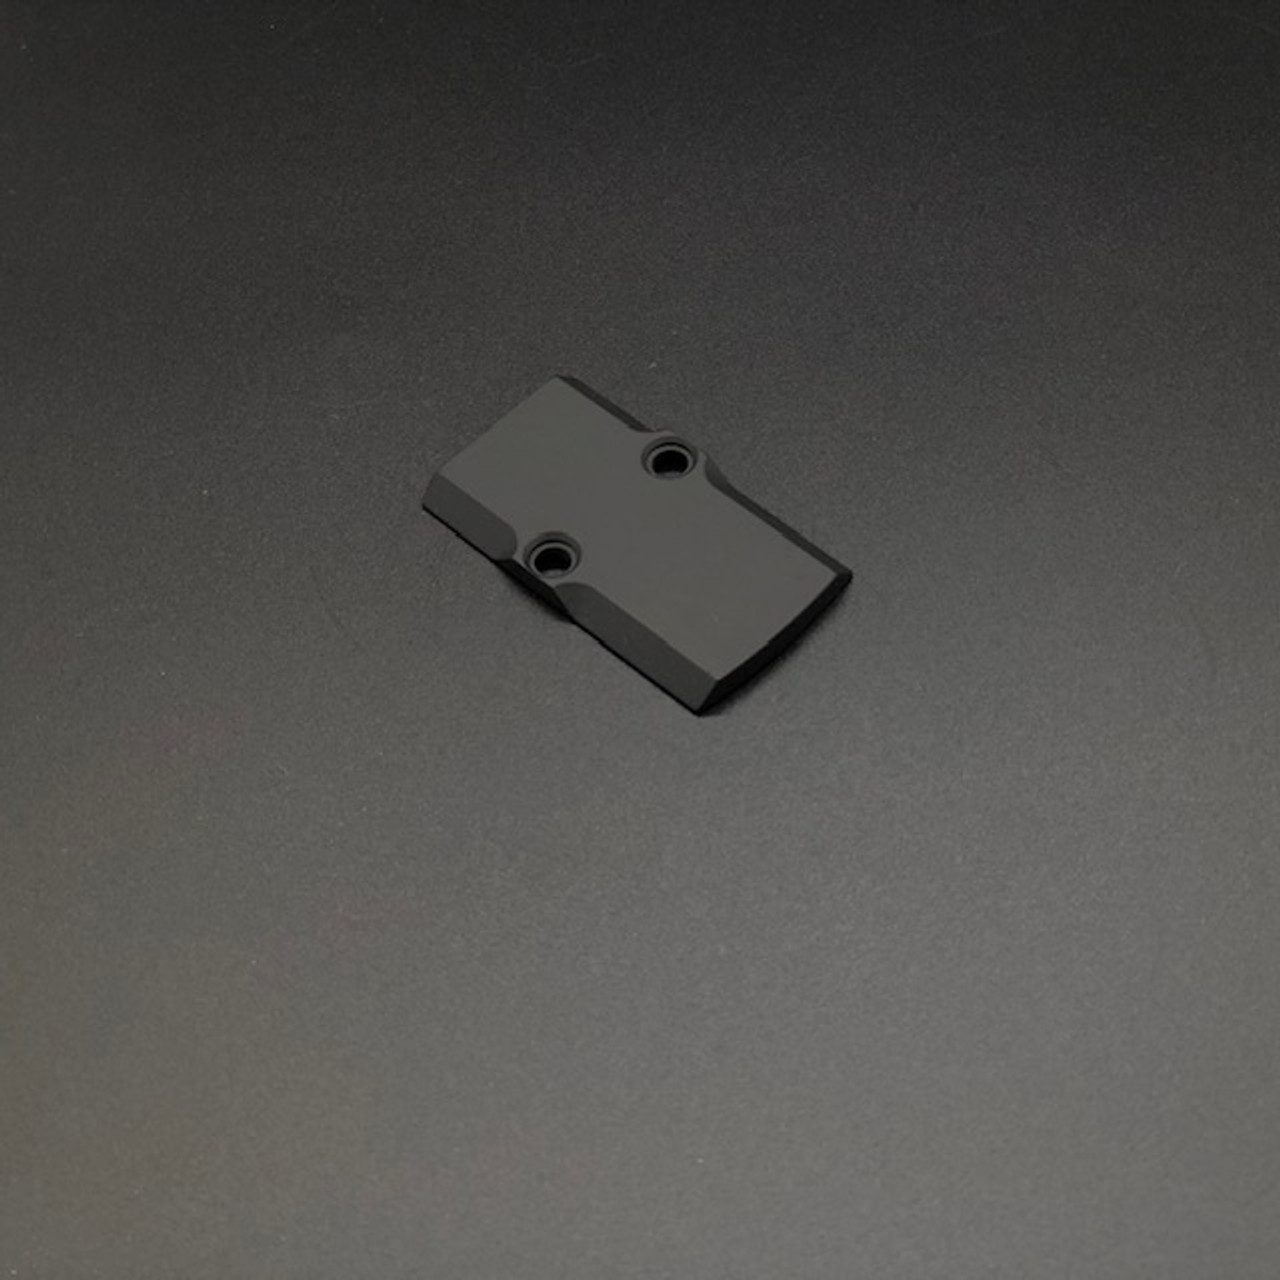 MDX Arms V1 RMR Plate Cover with Screws in Black